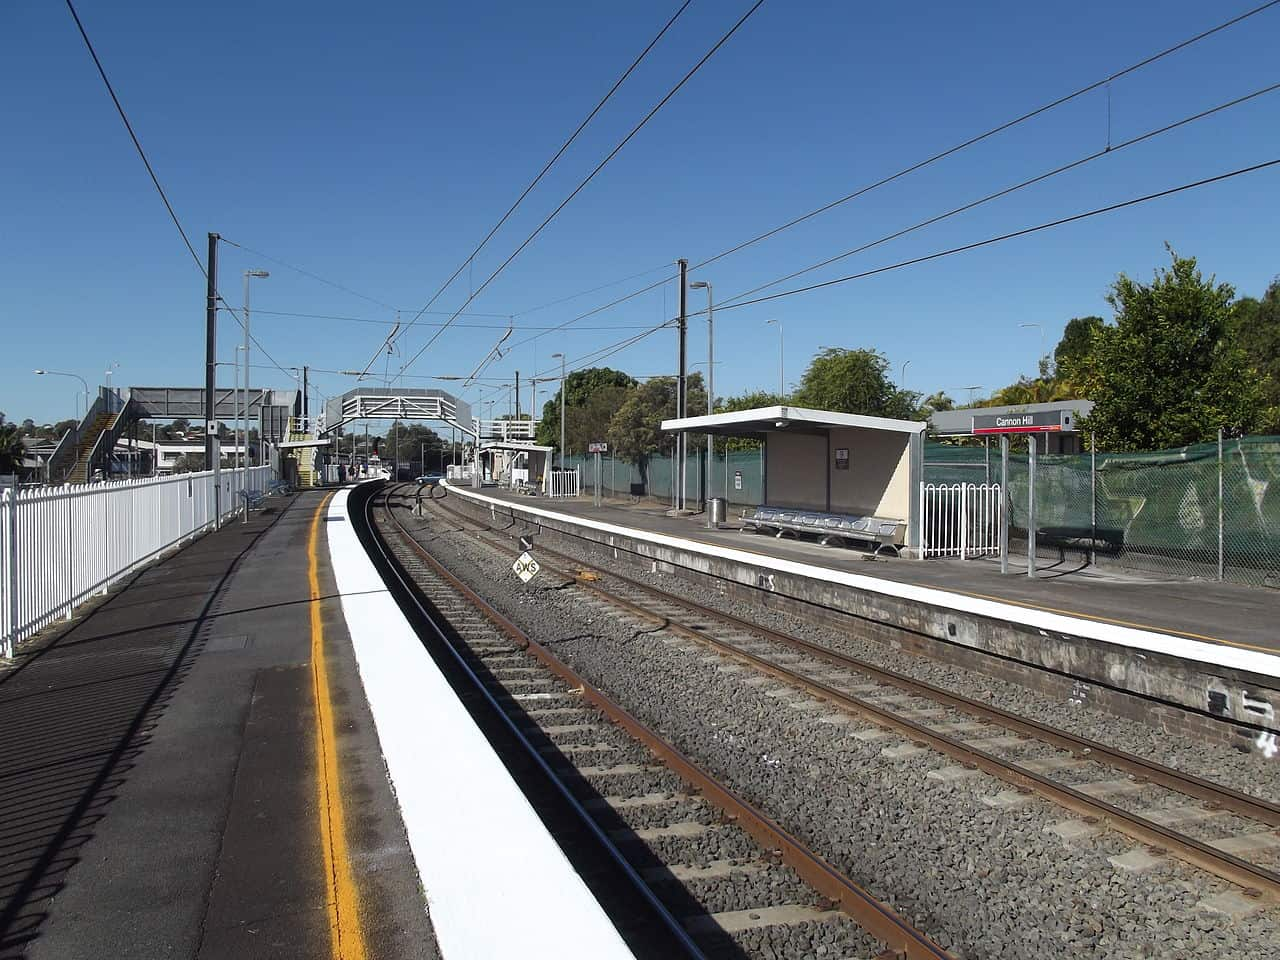 Cannon Hill station, Cannon Hill, Brisbane, QLD